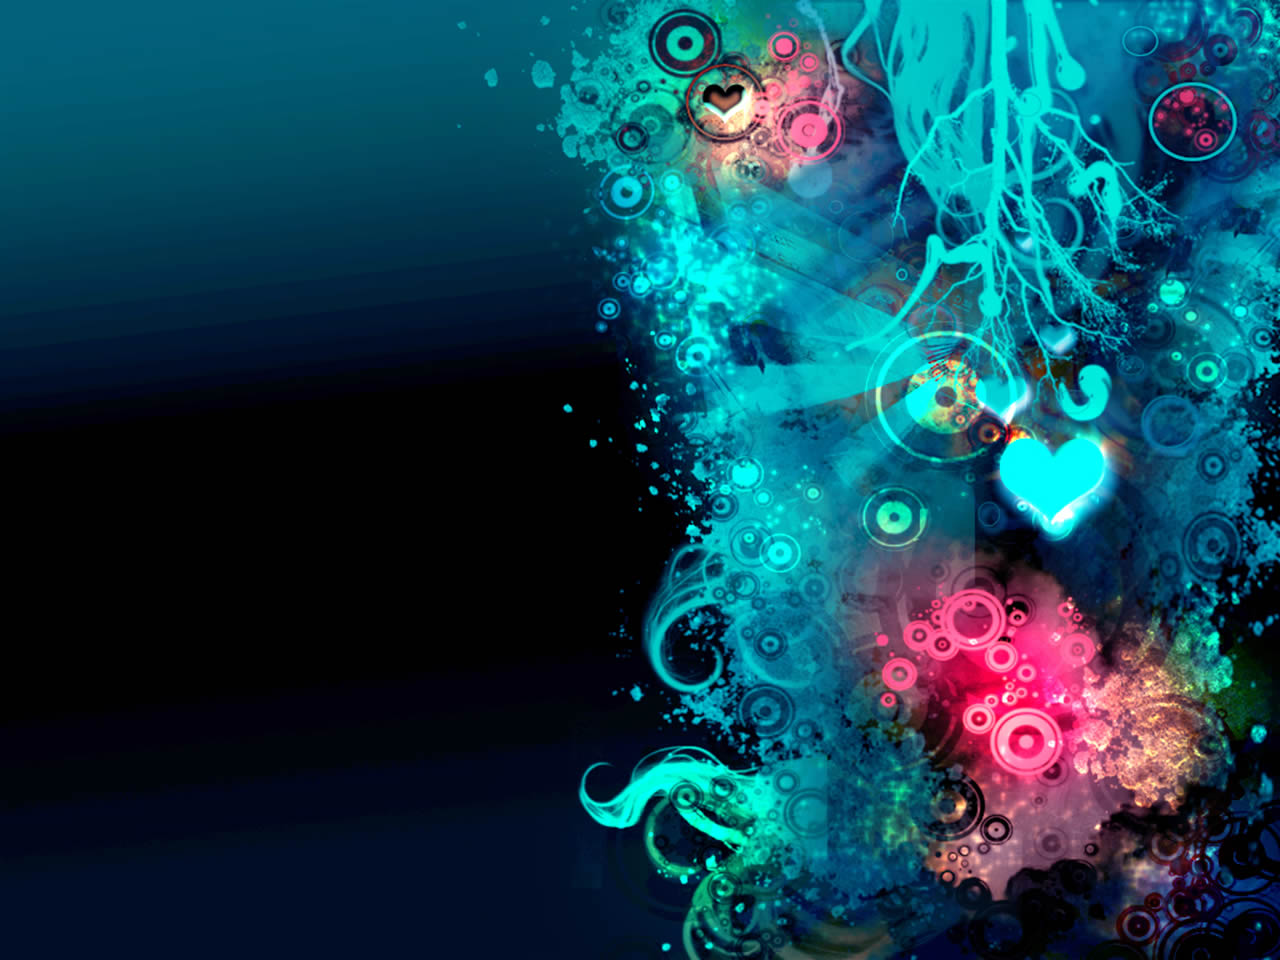 Heart In Love Wallpaper Hd: Love Wallpapers Hd, Amor Fondos De Pantalla, Love 3D